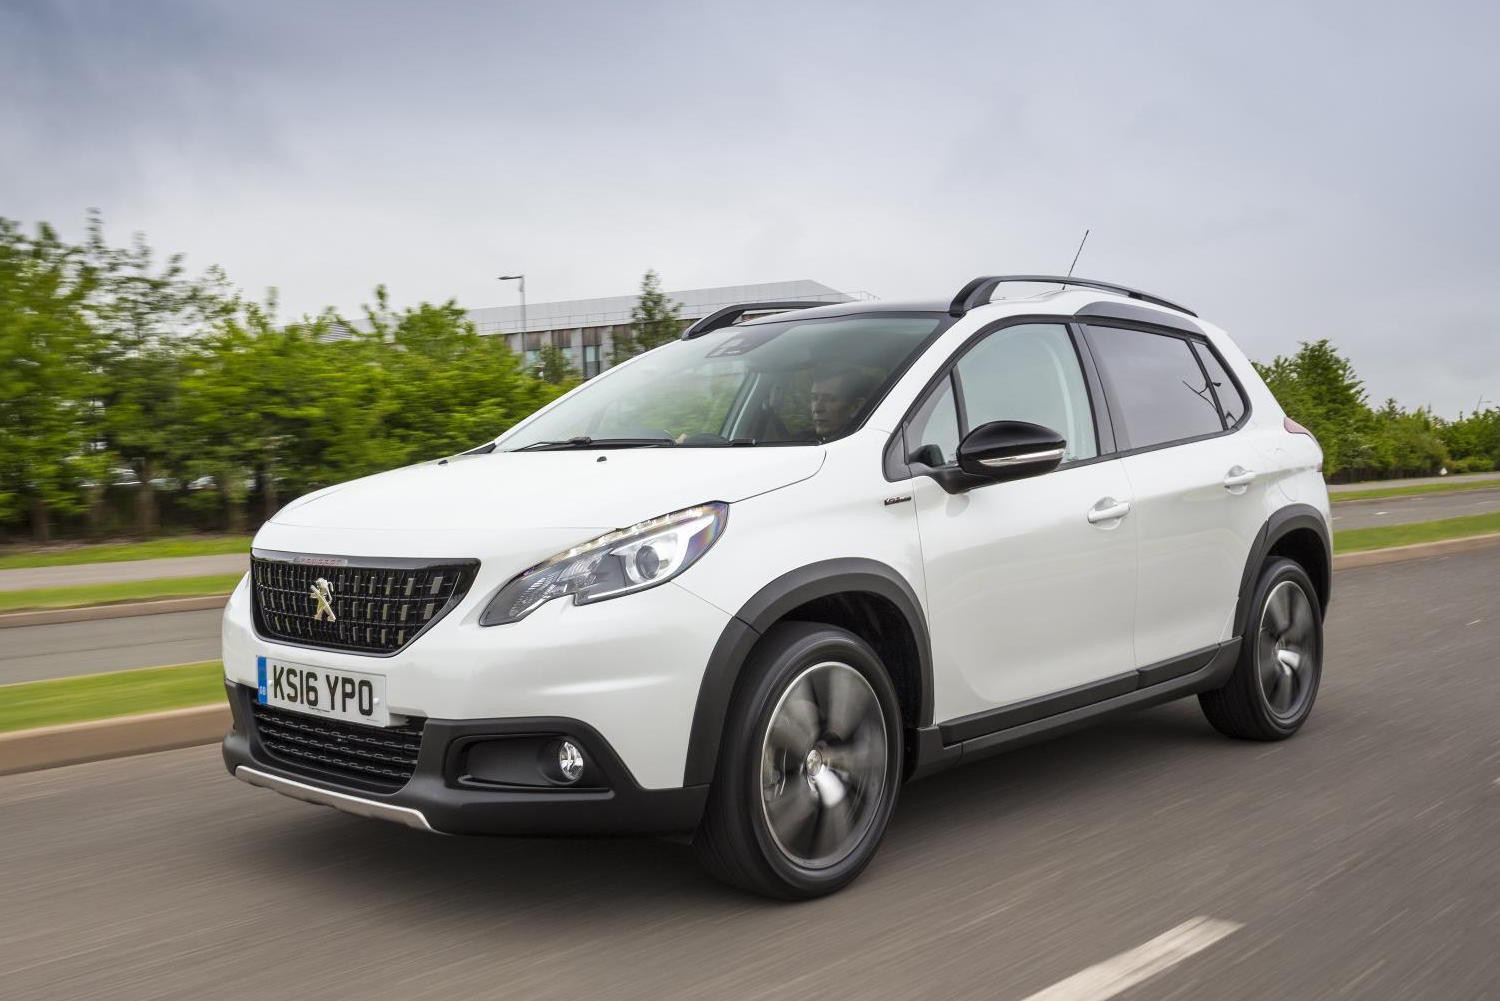 White Peugeot 2008 driving on a dual carriageway towards the left